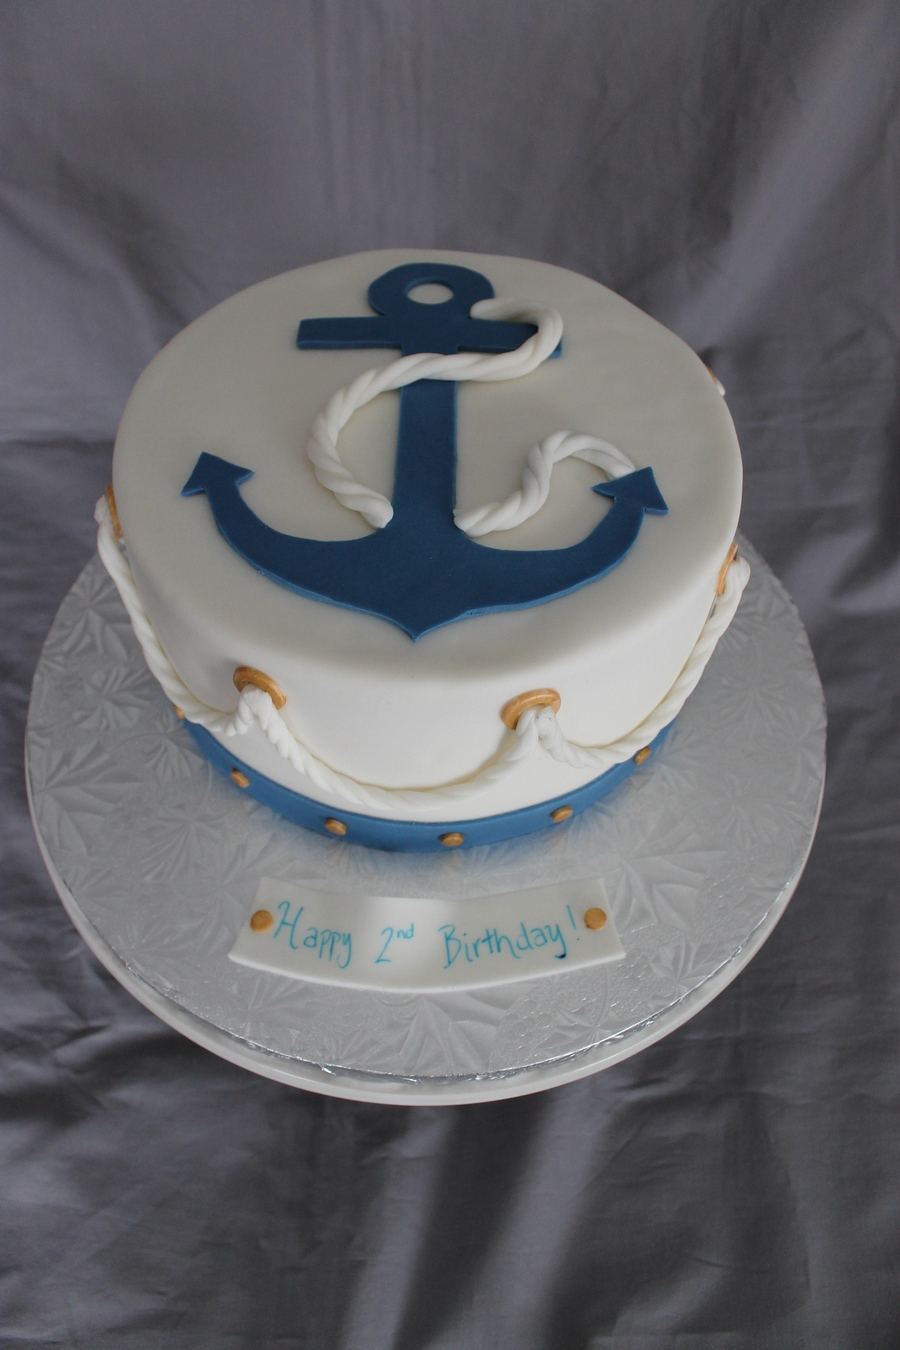 Tremendous Nautical Themed Birthday Cake Cakecentral Com Personalised Birthday Cards Sponlily Jamesorg